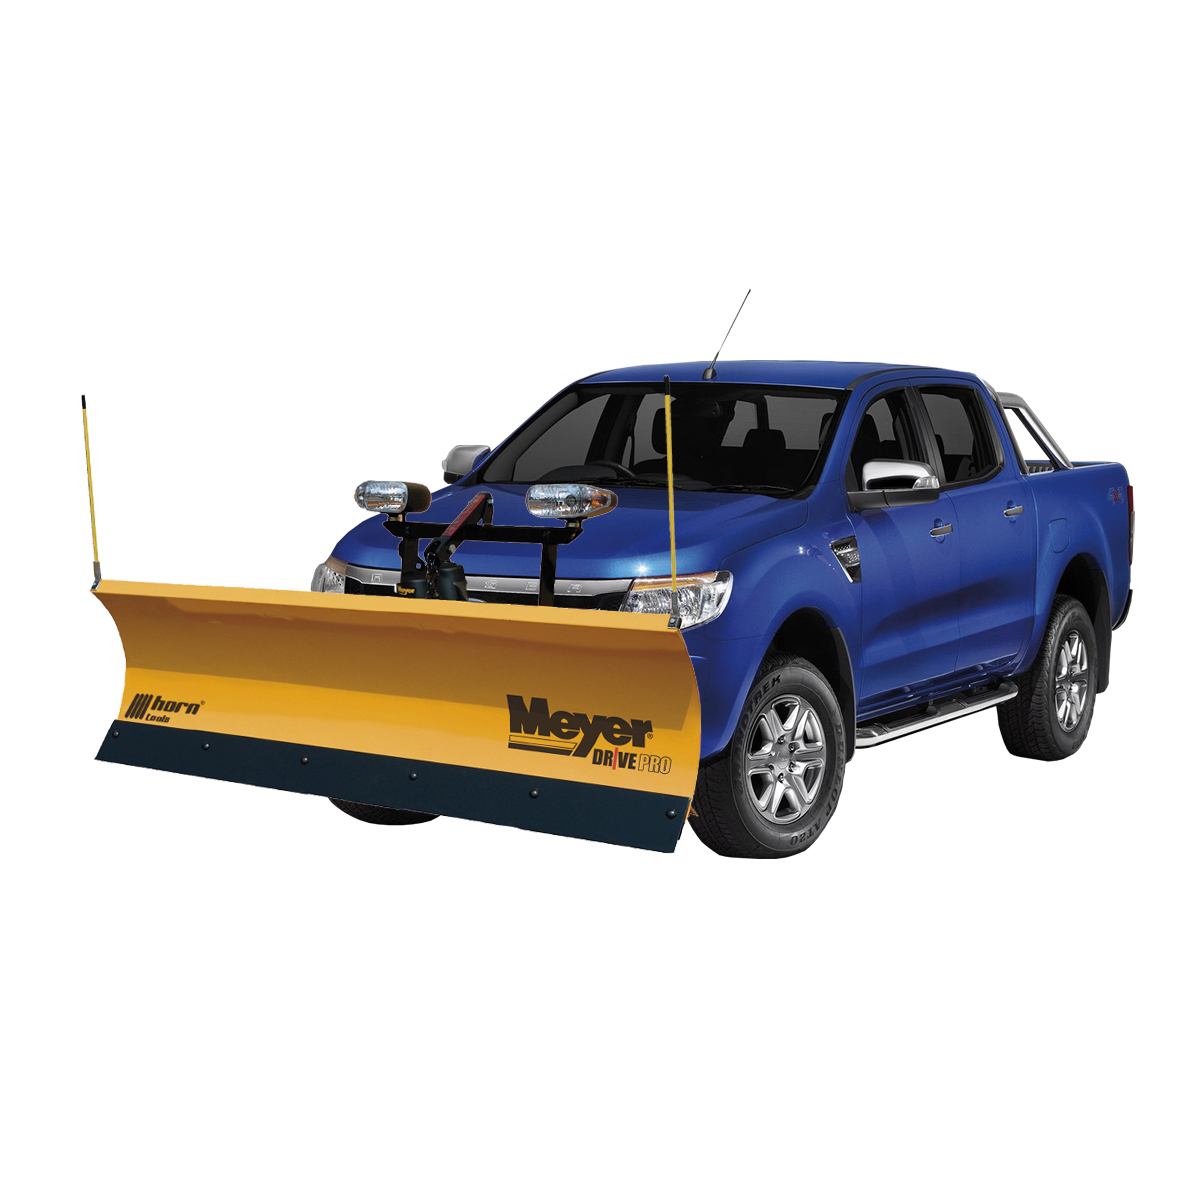 schneepflug system ford ranger 2012 ezrh 203cm drivepro aebi schmidt holding ag meyer elektro hydra. Black Bedroom Furniture Sets. Home Design Ideas